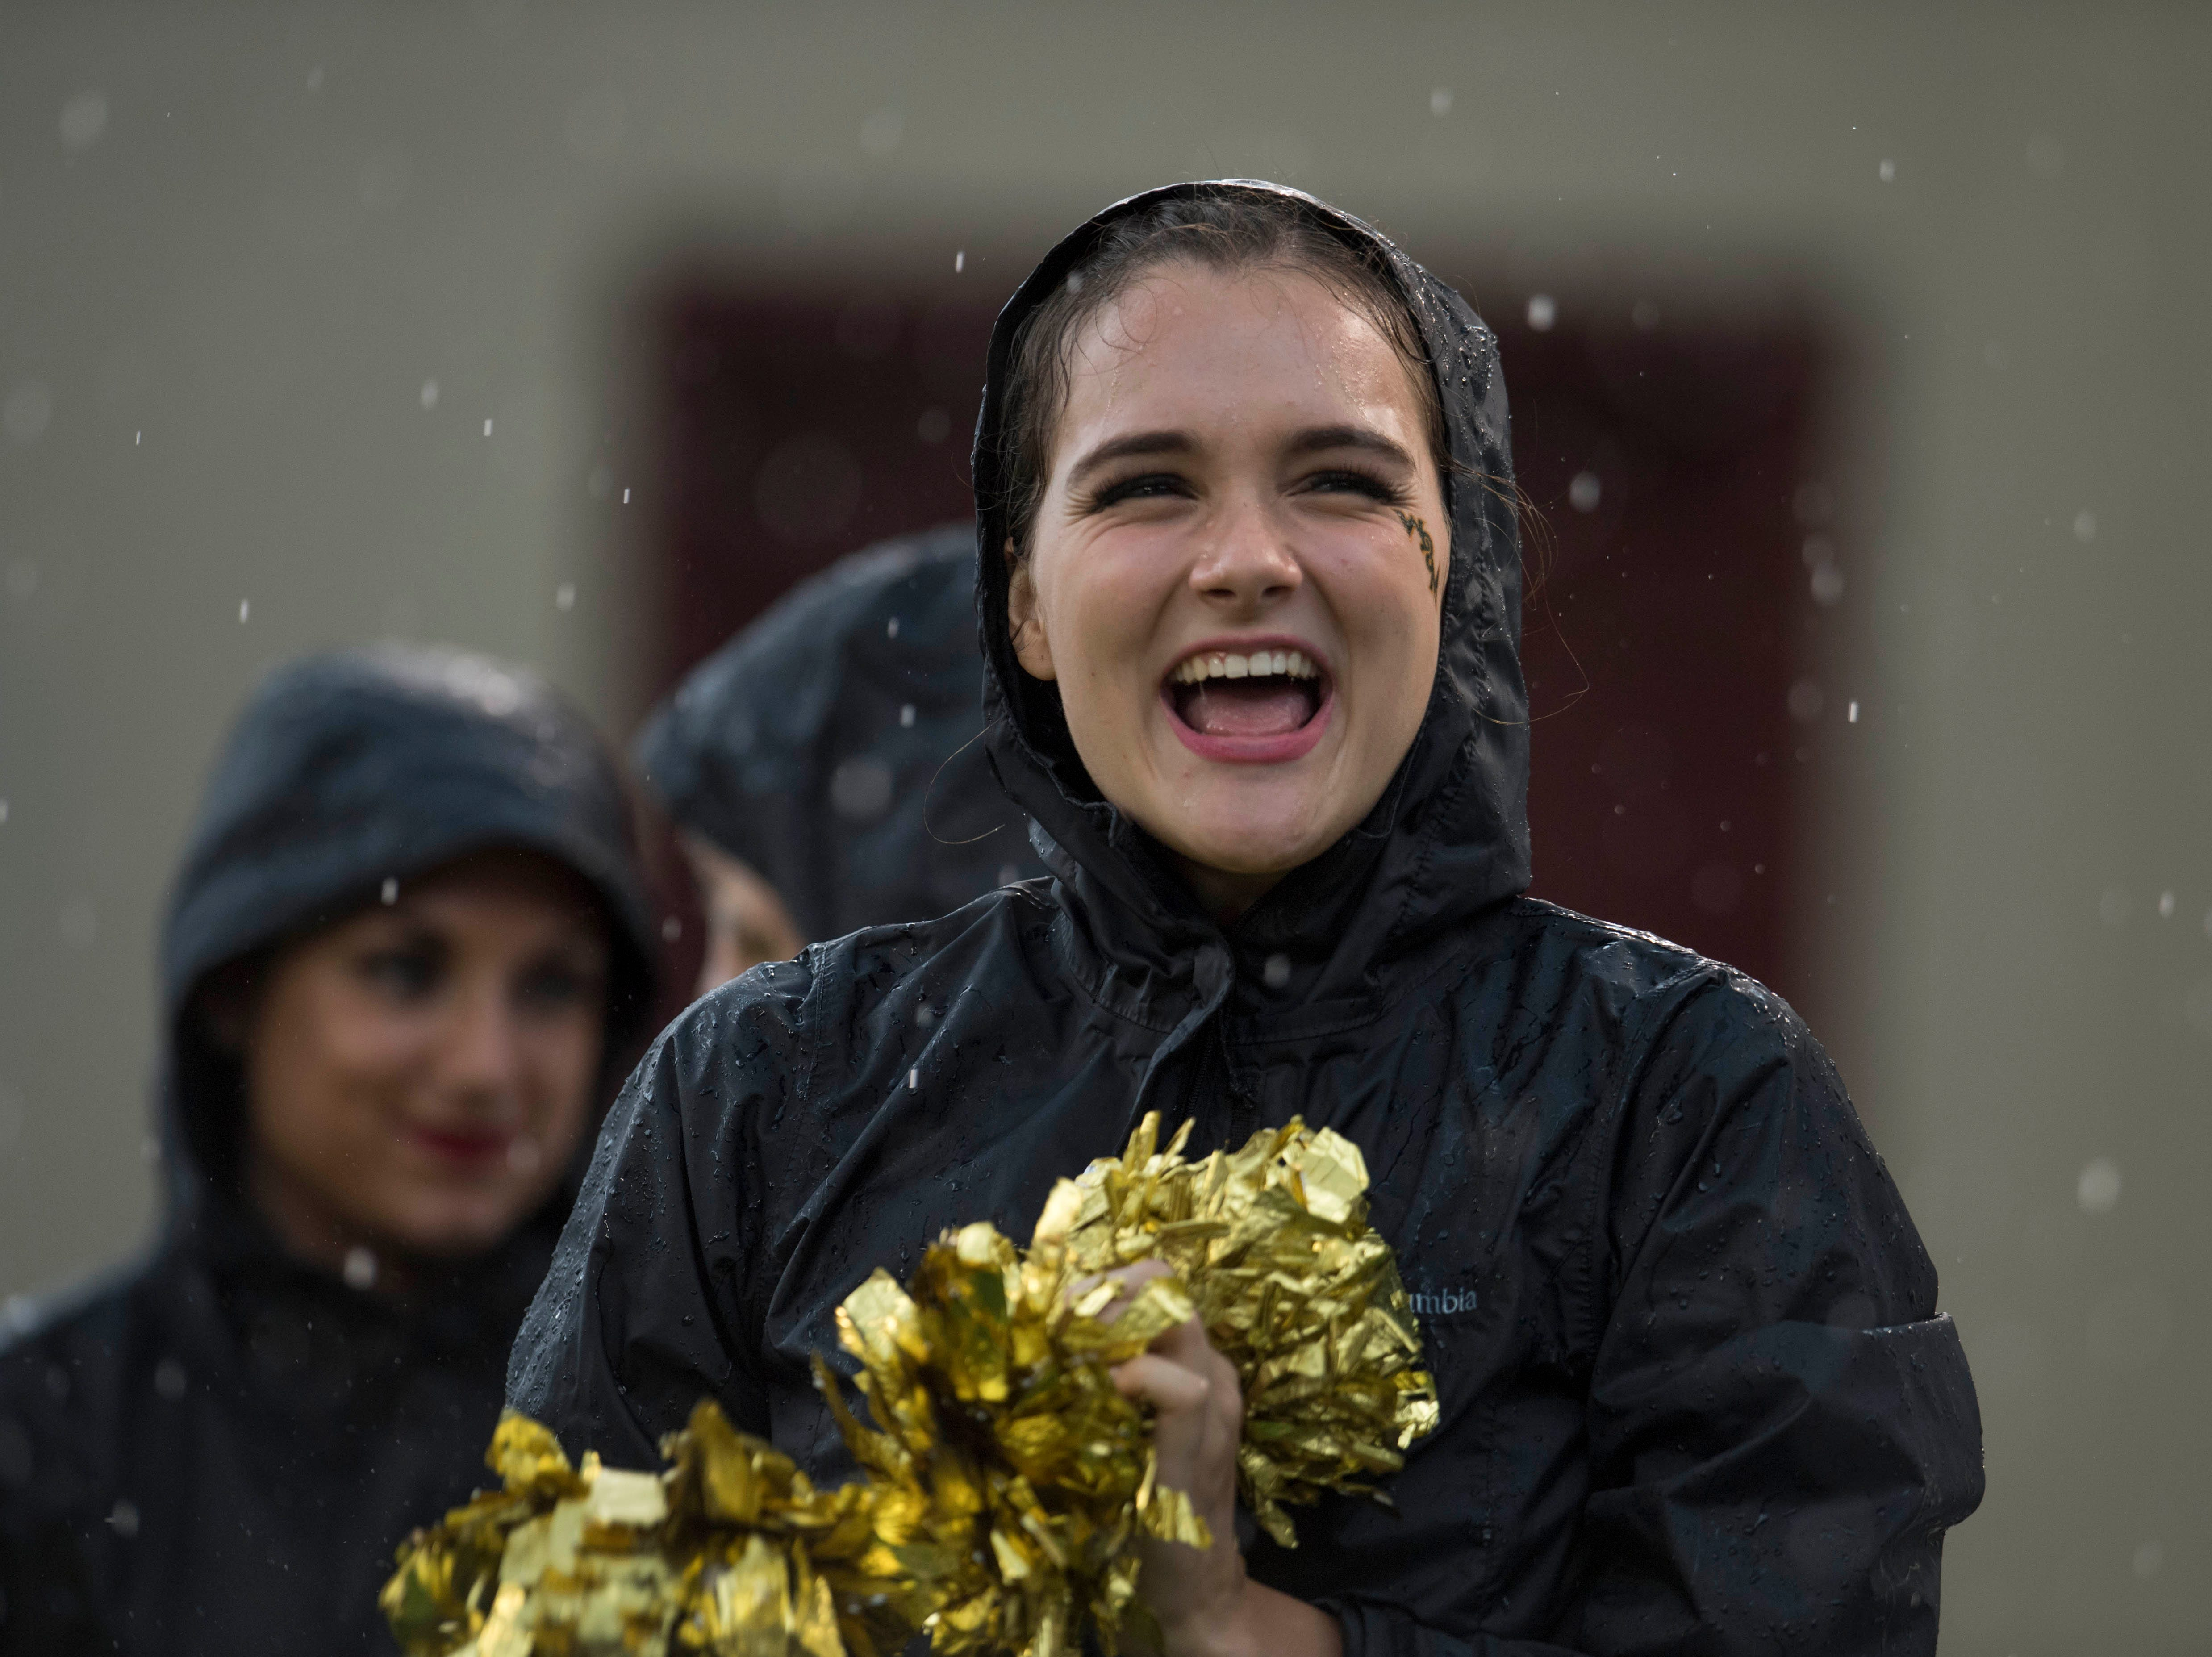 Week 2: A William& Mary Tribe cheerleader performs in the rain against the Virginia Tech Hokies at Lane Stadium.